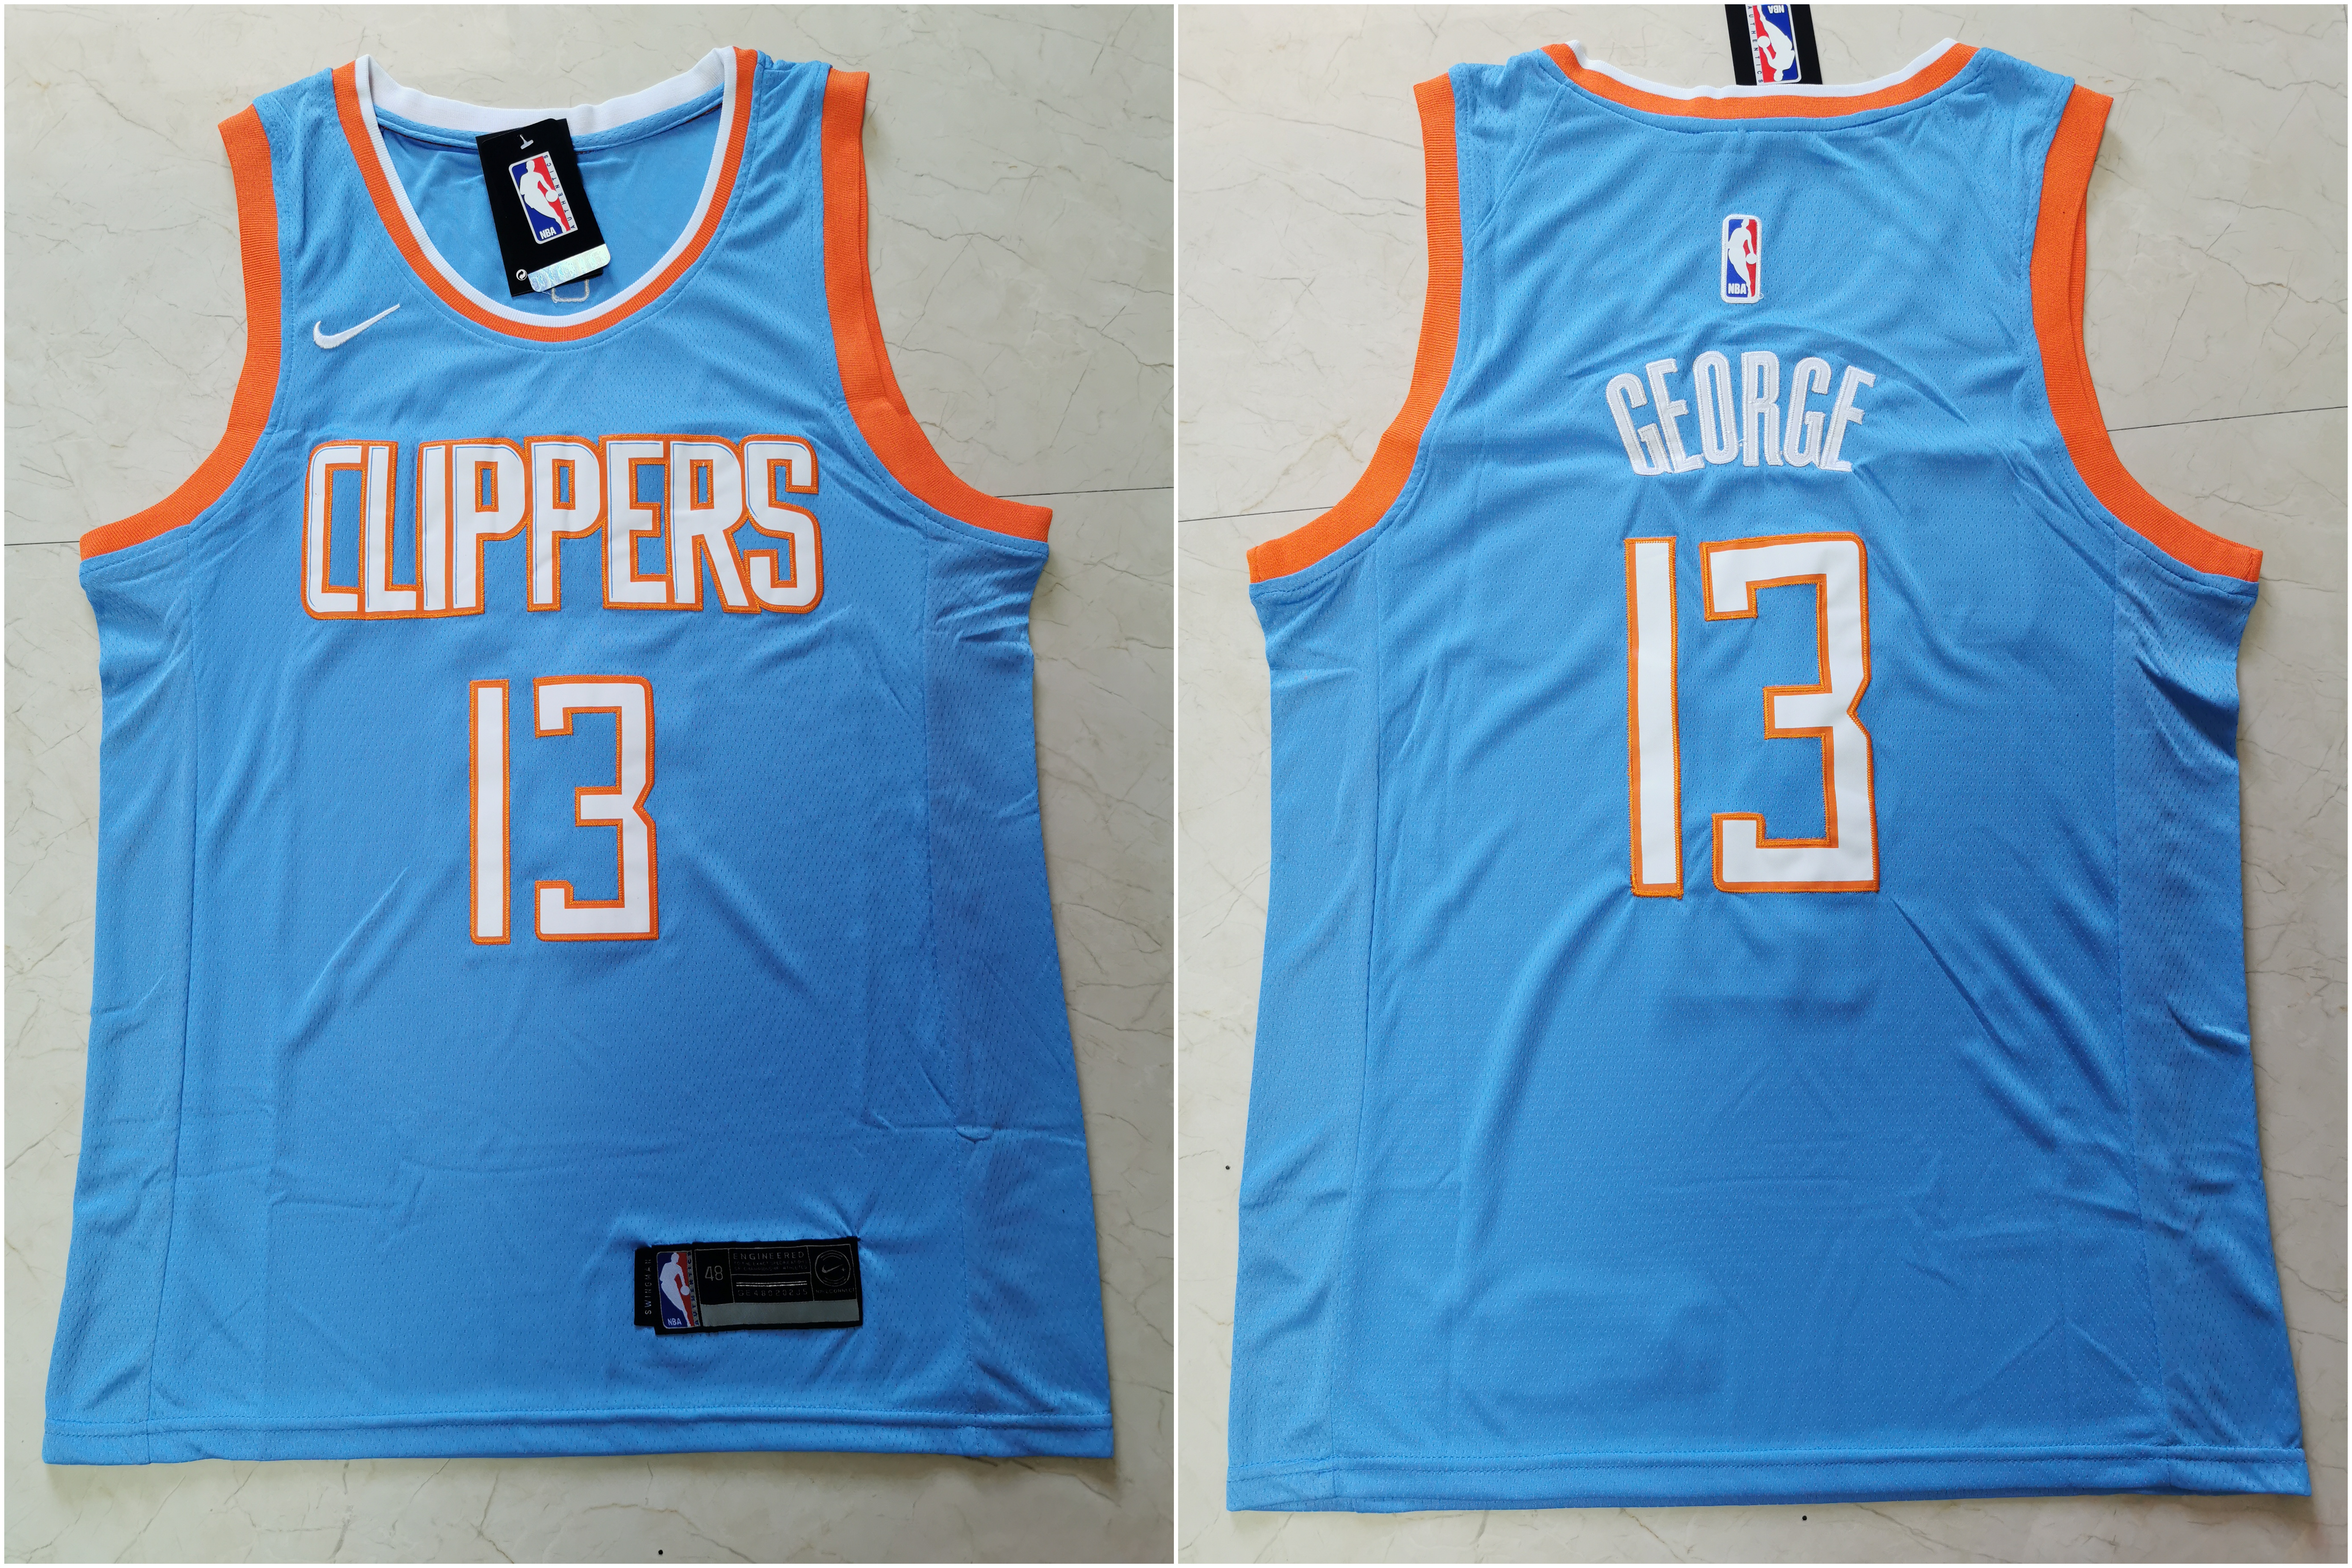 Clippers 13 Paul George Light Blue City Edition Nike Swingman Jersey